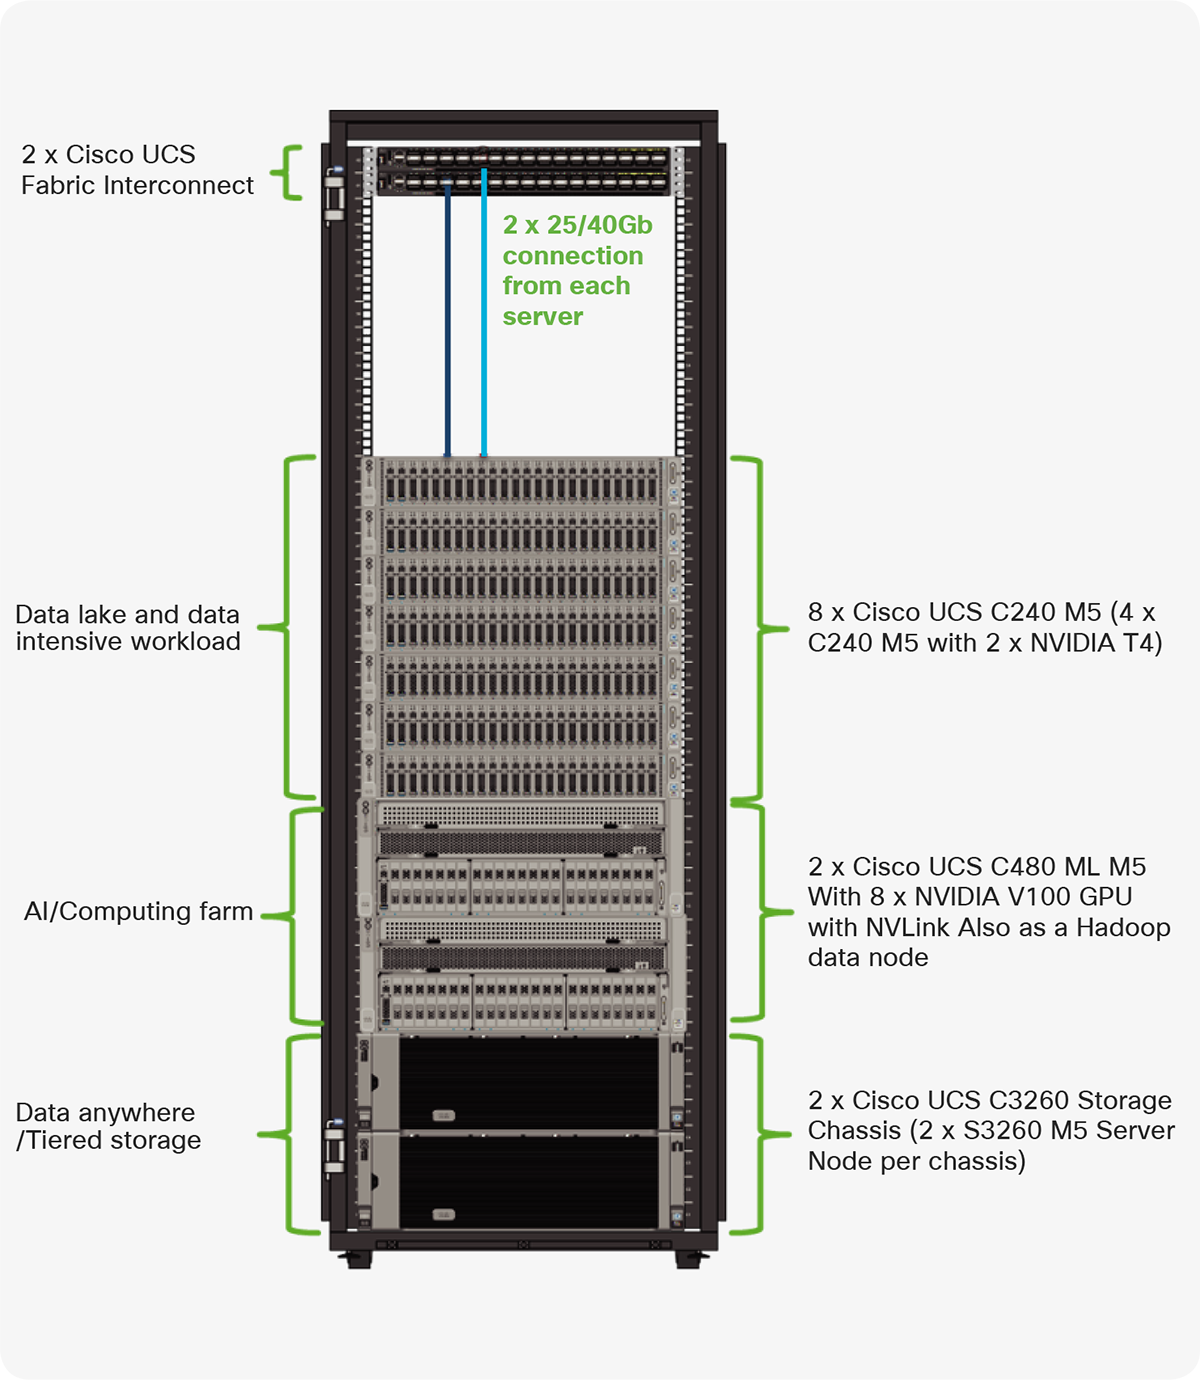 Cisco Data Intelligence Platform deployed in a single rack